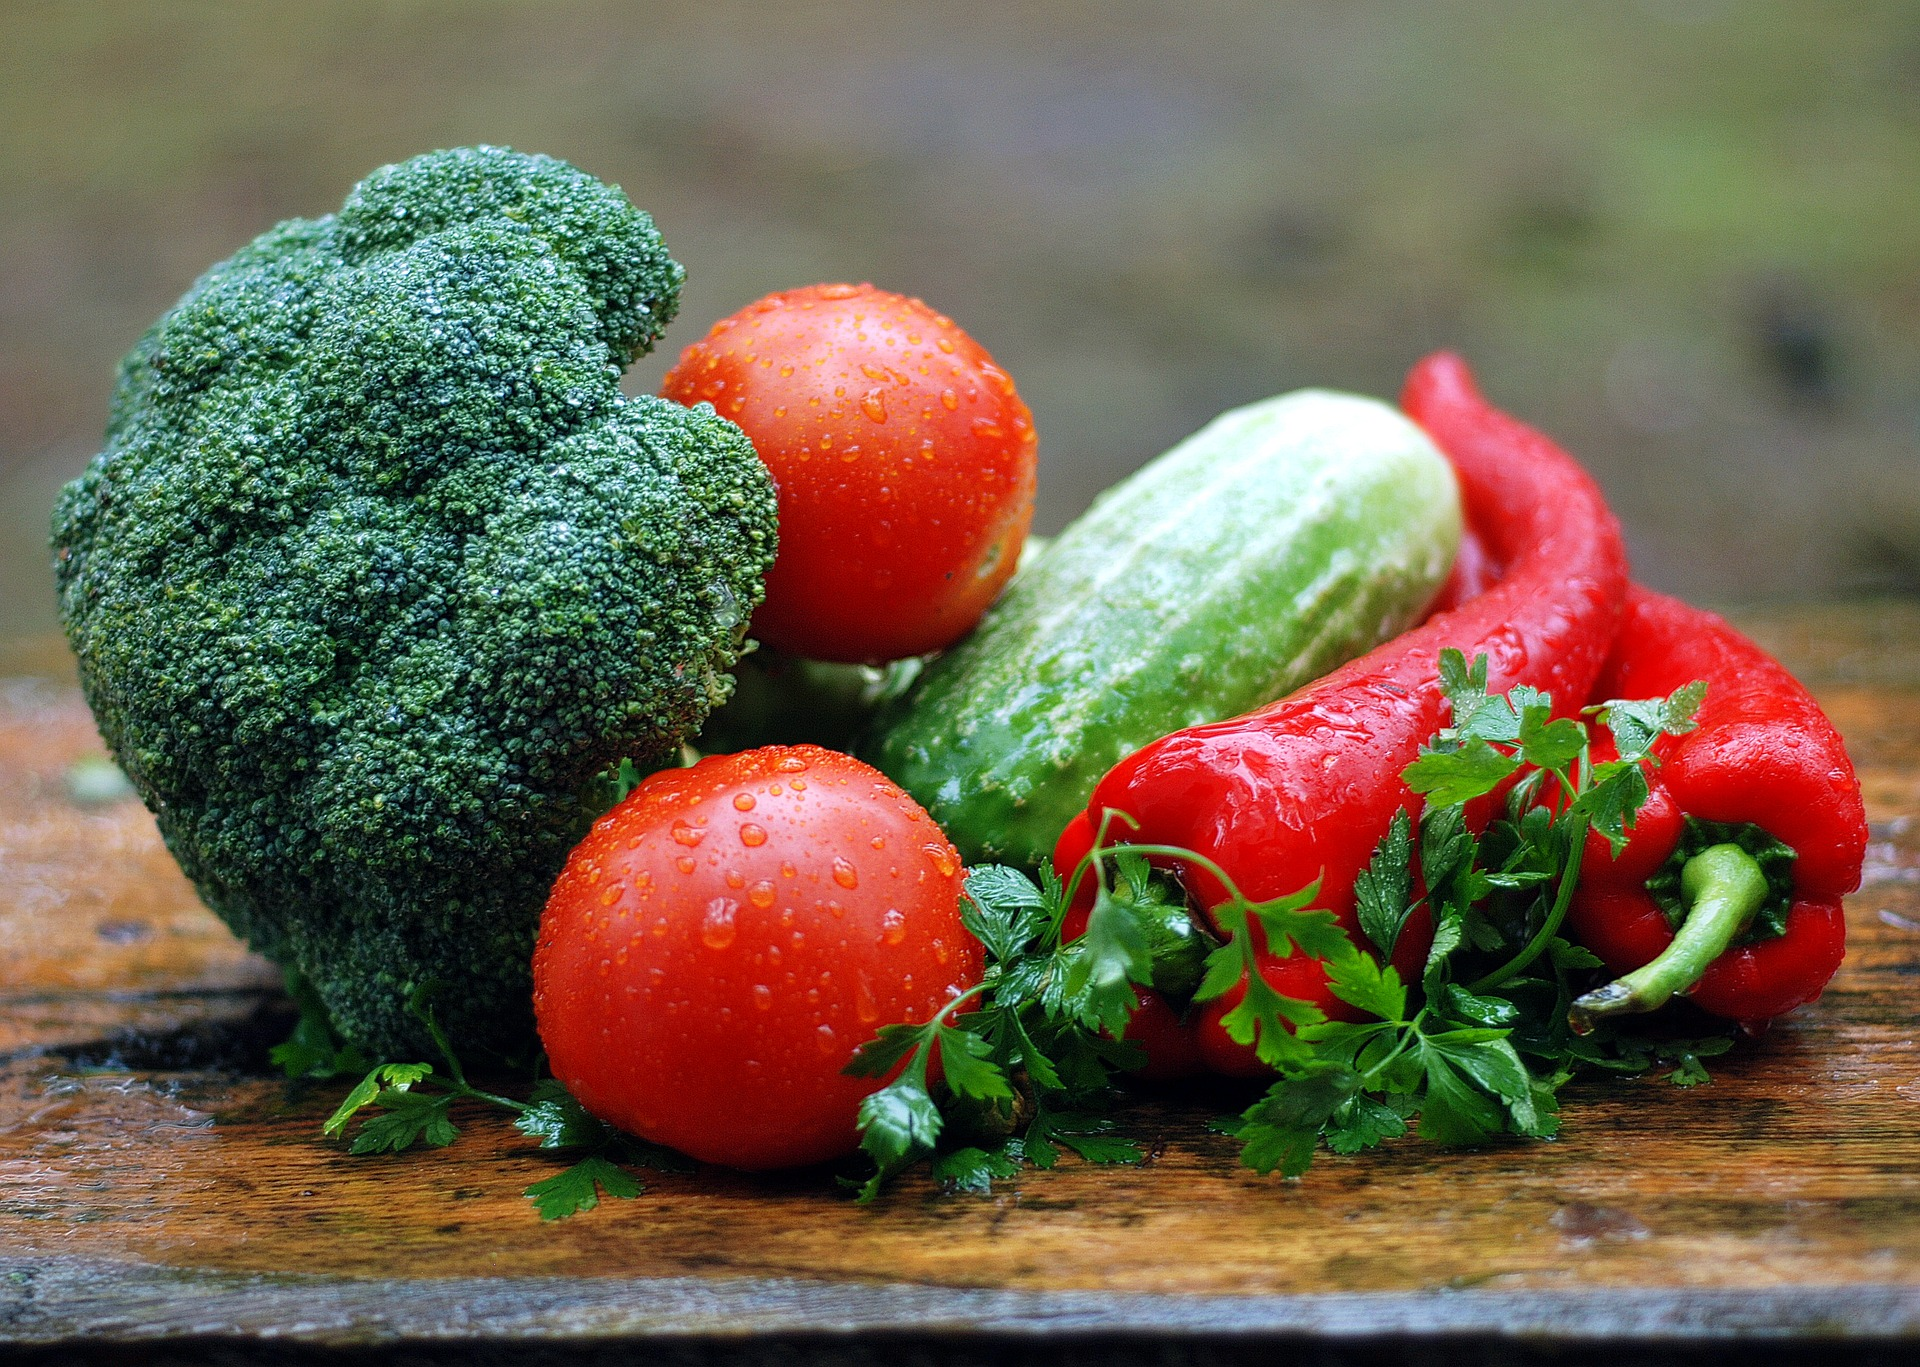 Broccoli, tomatoes, zucchini, and peppers piled on a wood surface